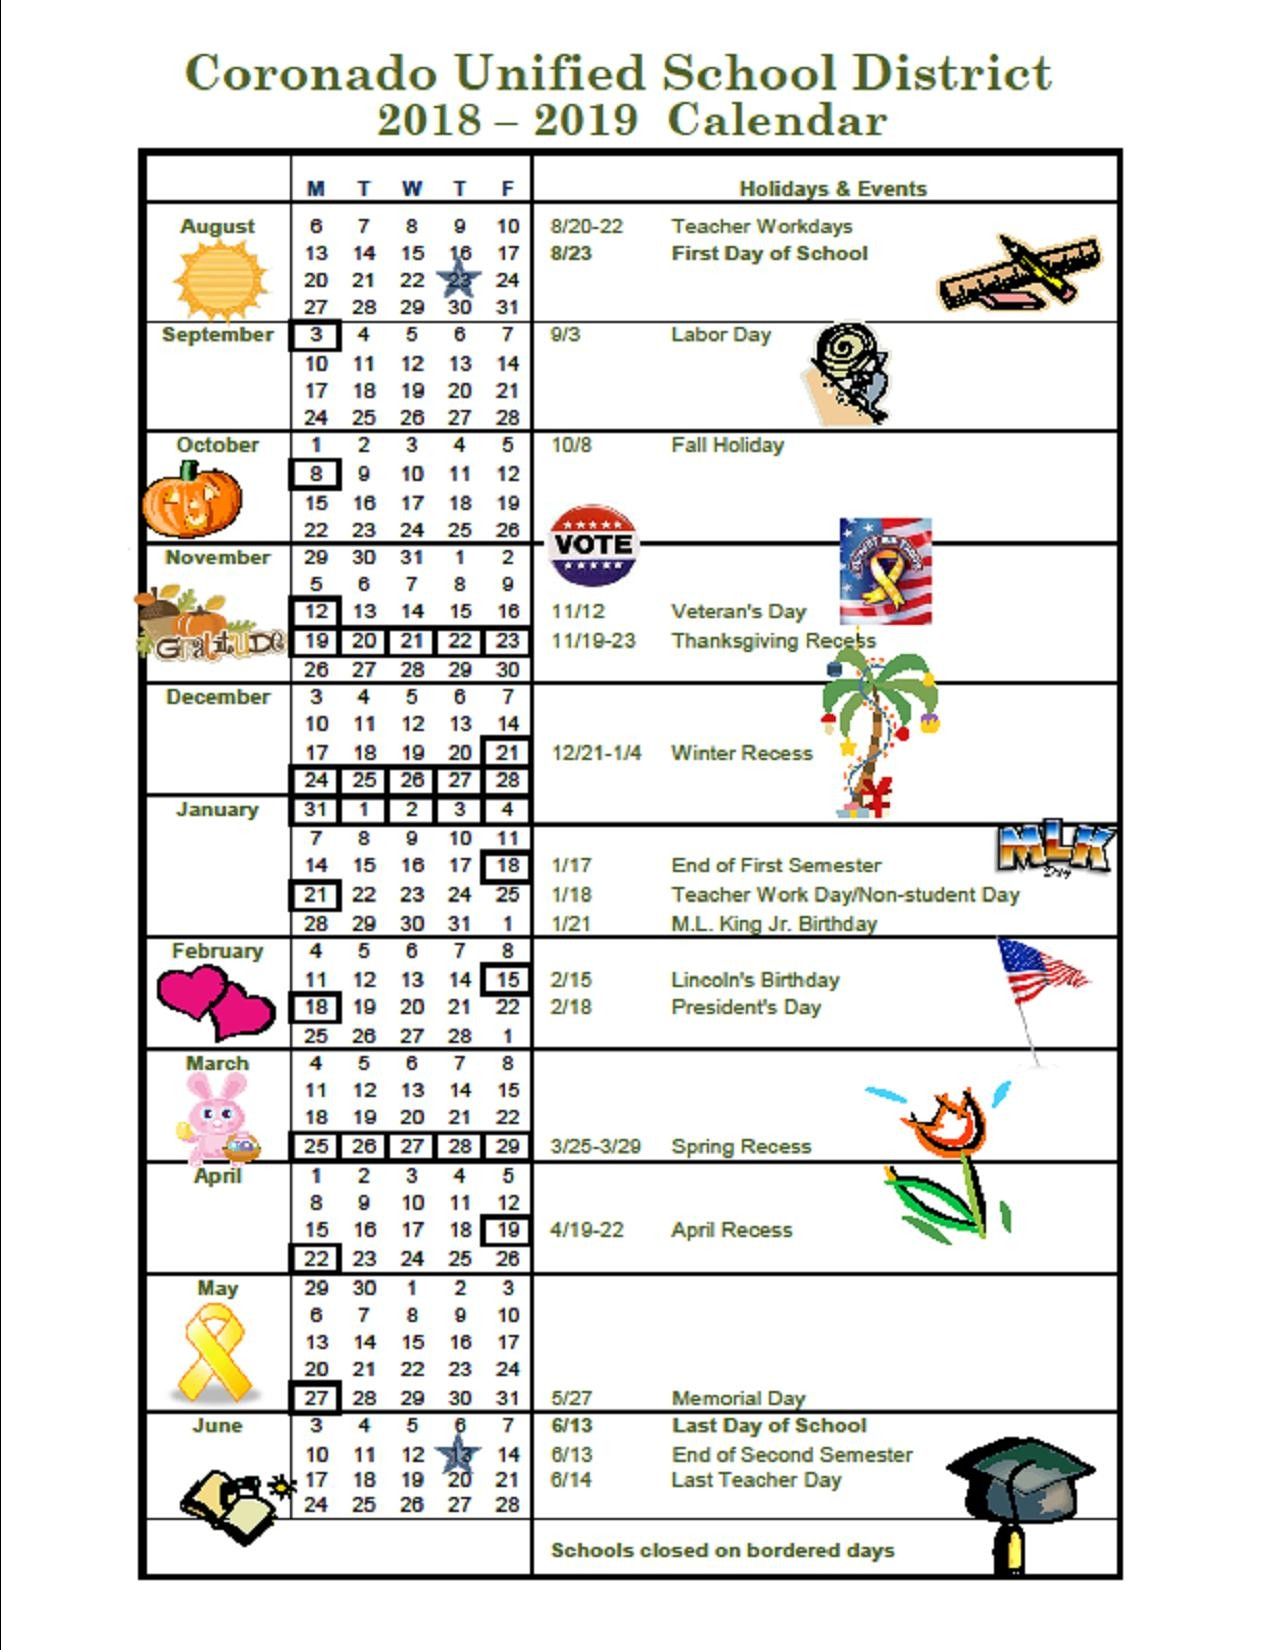 Calendario Escolar 2019 Kinder Más Recientemente Liberado About Academic Calendar & Bell Schedule Of Calendario Escolar 2019 Kinder Más Recientes District Calendar – District Calendar – Grandview C 4 School District